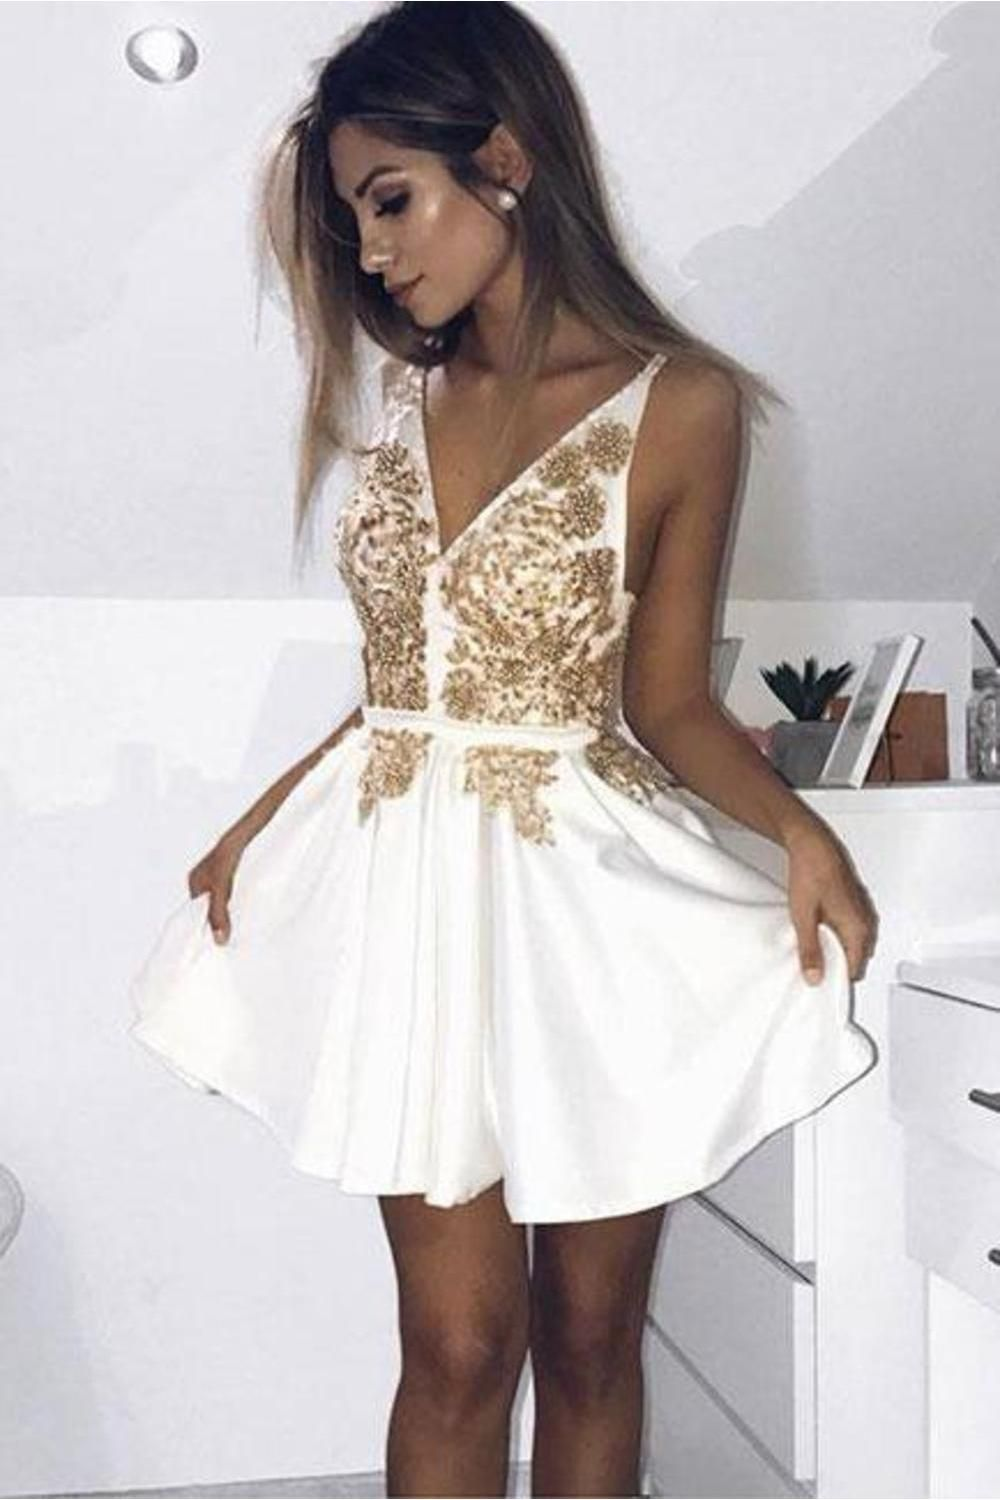 Cute V Neck Short Prom Dress, White Satin Homecoming Dress With Appliques - White homecoming dresses, Short prom dress, Homecoming dresses short, Prom dresses short, White evening dress, Mini prom dresses - Mini, FABRIC Satin, SLEEVE LENGTH Sleeveless, STYLES Chic & Modern, NECKLINE V Neck , VPPSYGTFKZ